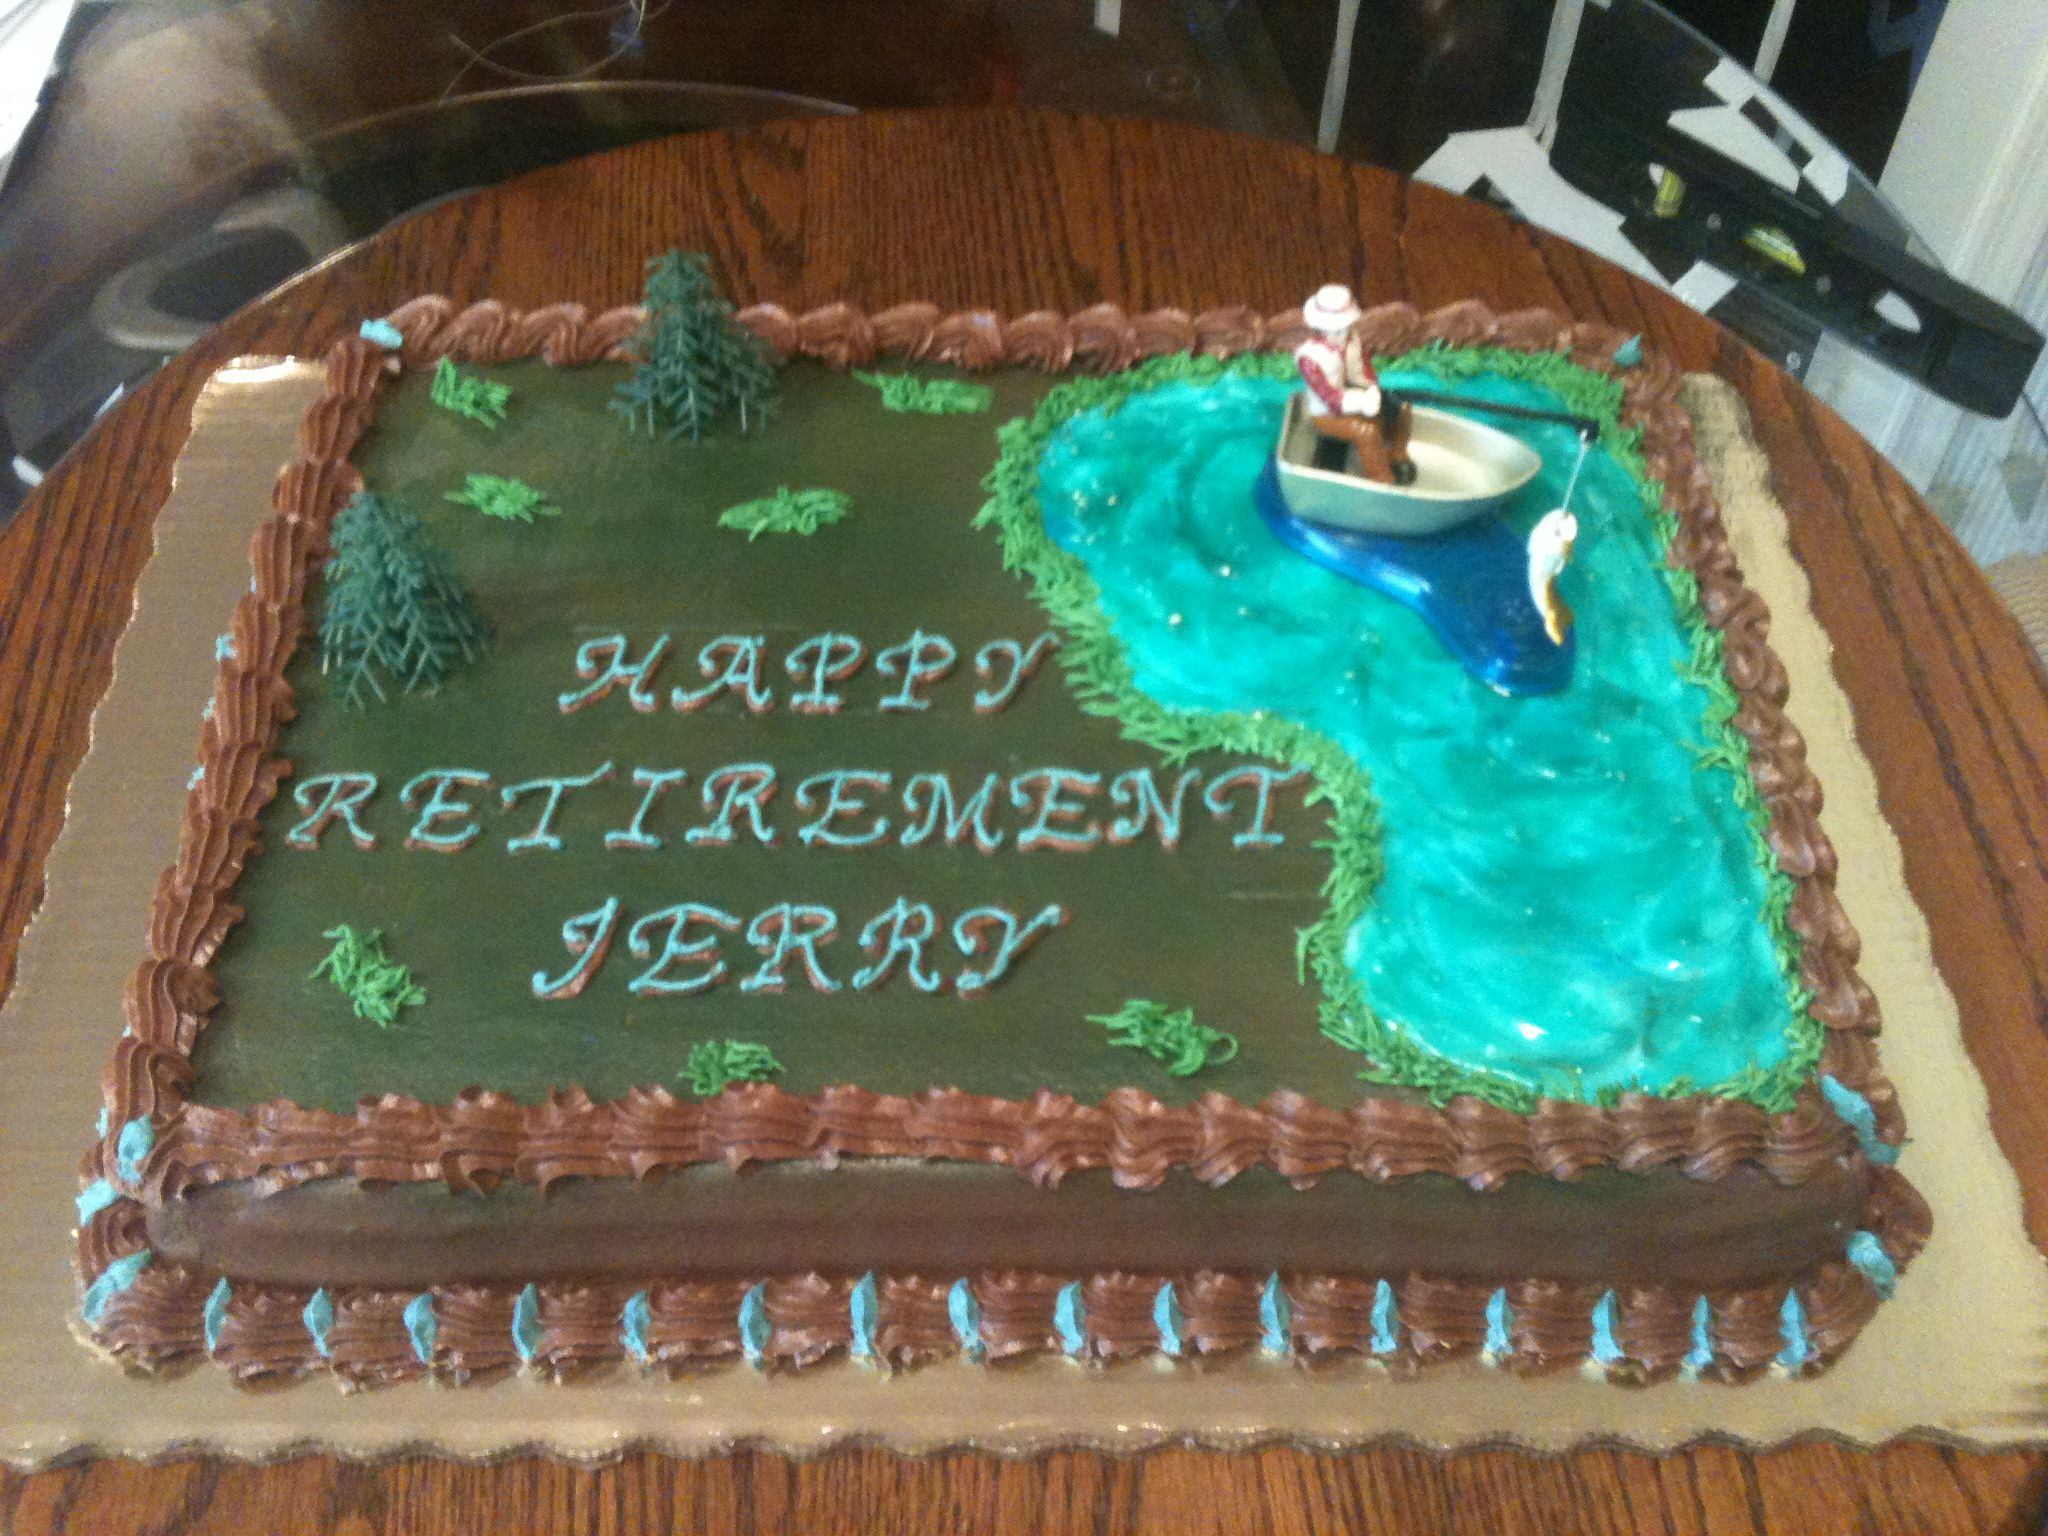 Retirement Cake 3-16-12 Made by momma @Susie Ward